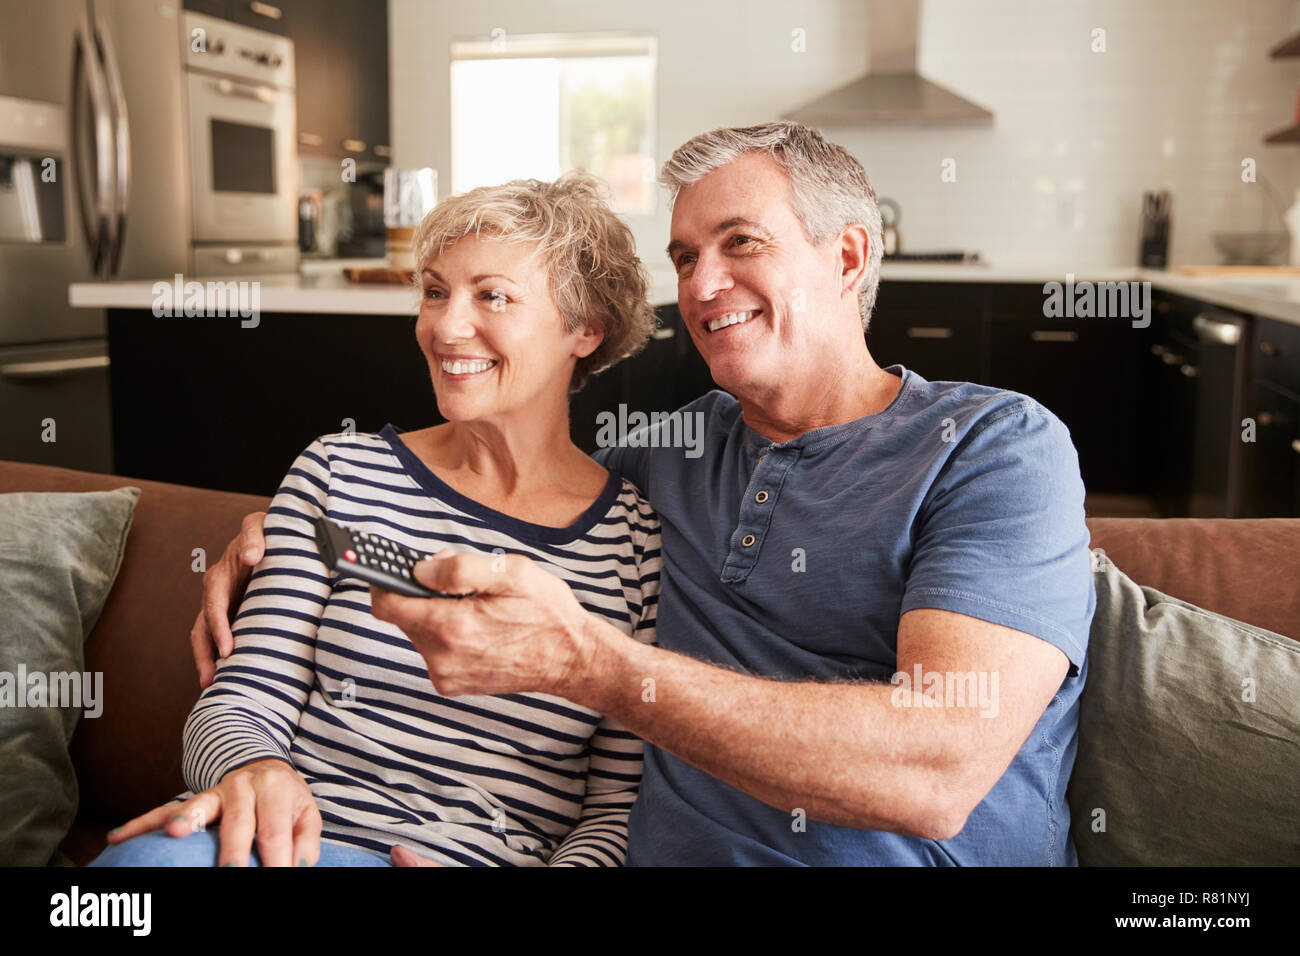 Senior couple sitting on couch watching television, close up Stock Photo